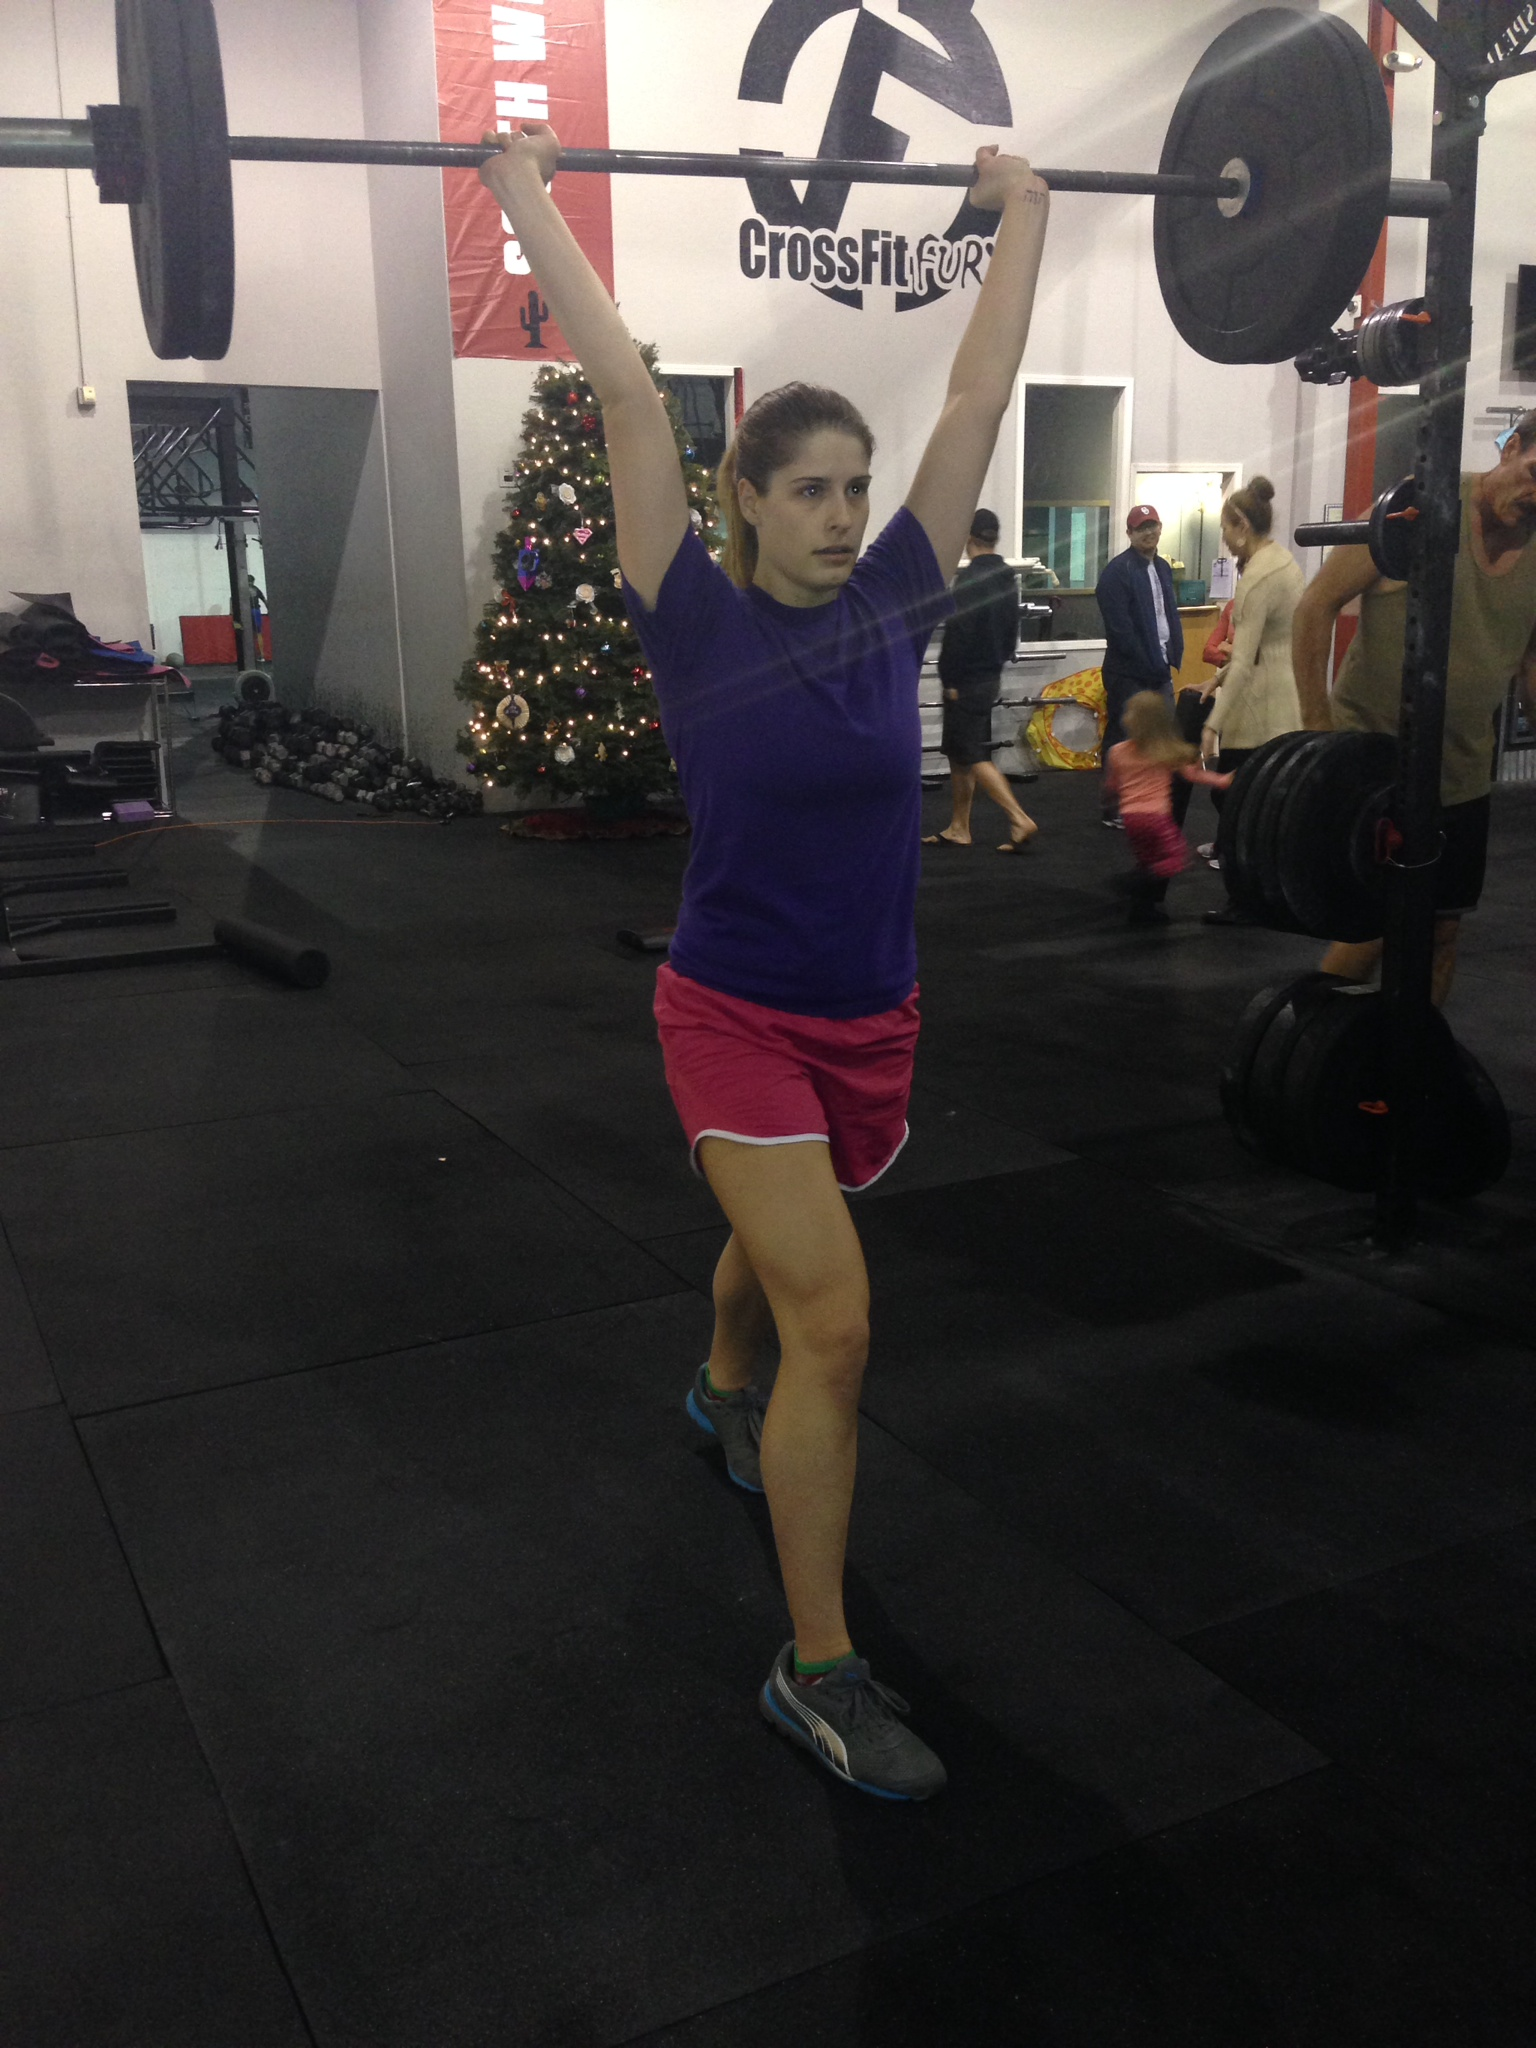 In Our Member's Words: Why I joined CrossFit